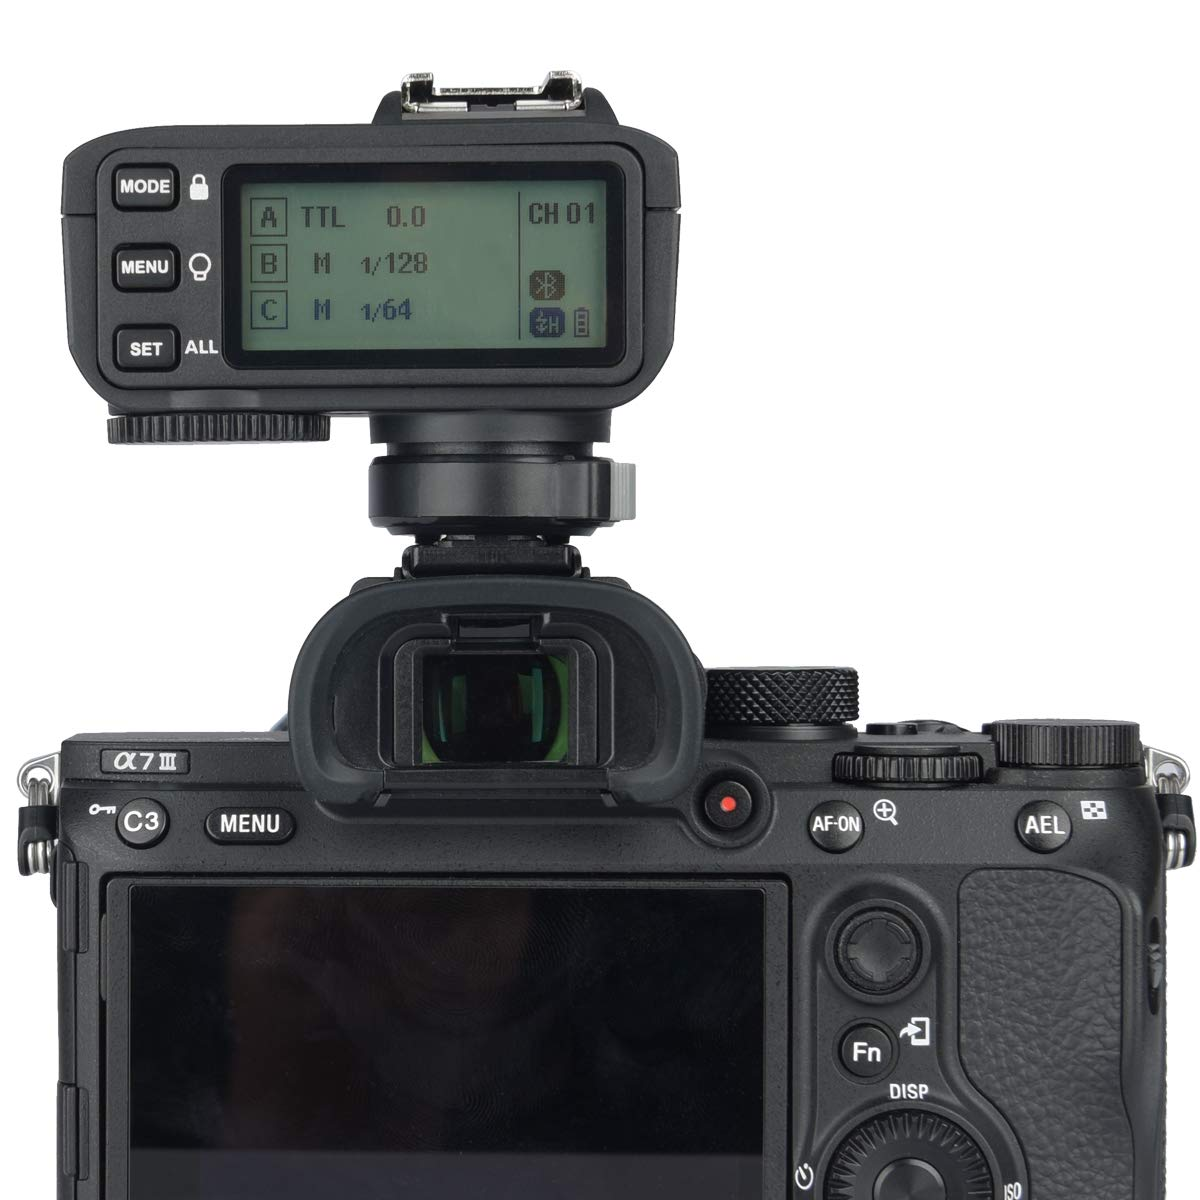 Godox X2T-S TTL Wireless Trigger, 1/8000s High-Speed Sync 2.4G TTL Transmitter, Compatible with Sony DSLR (X2T-S) by Godox (Image #6)